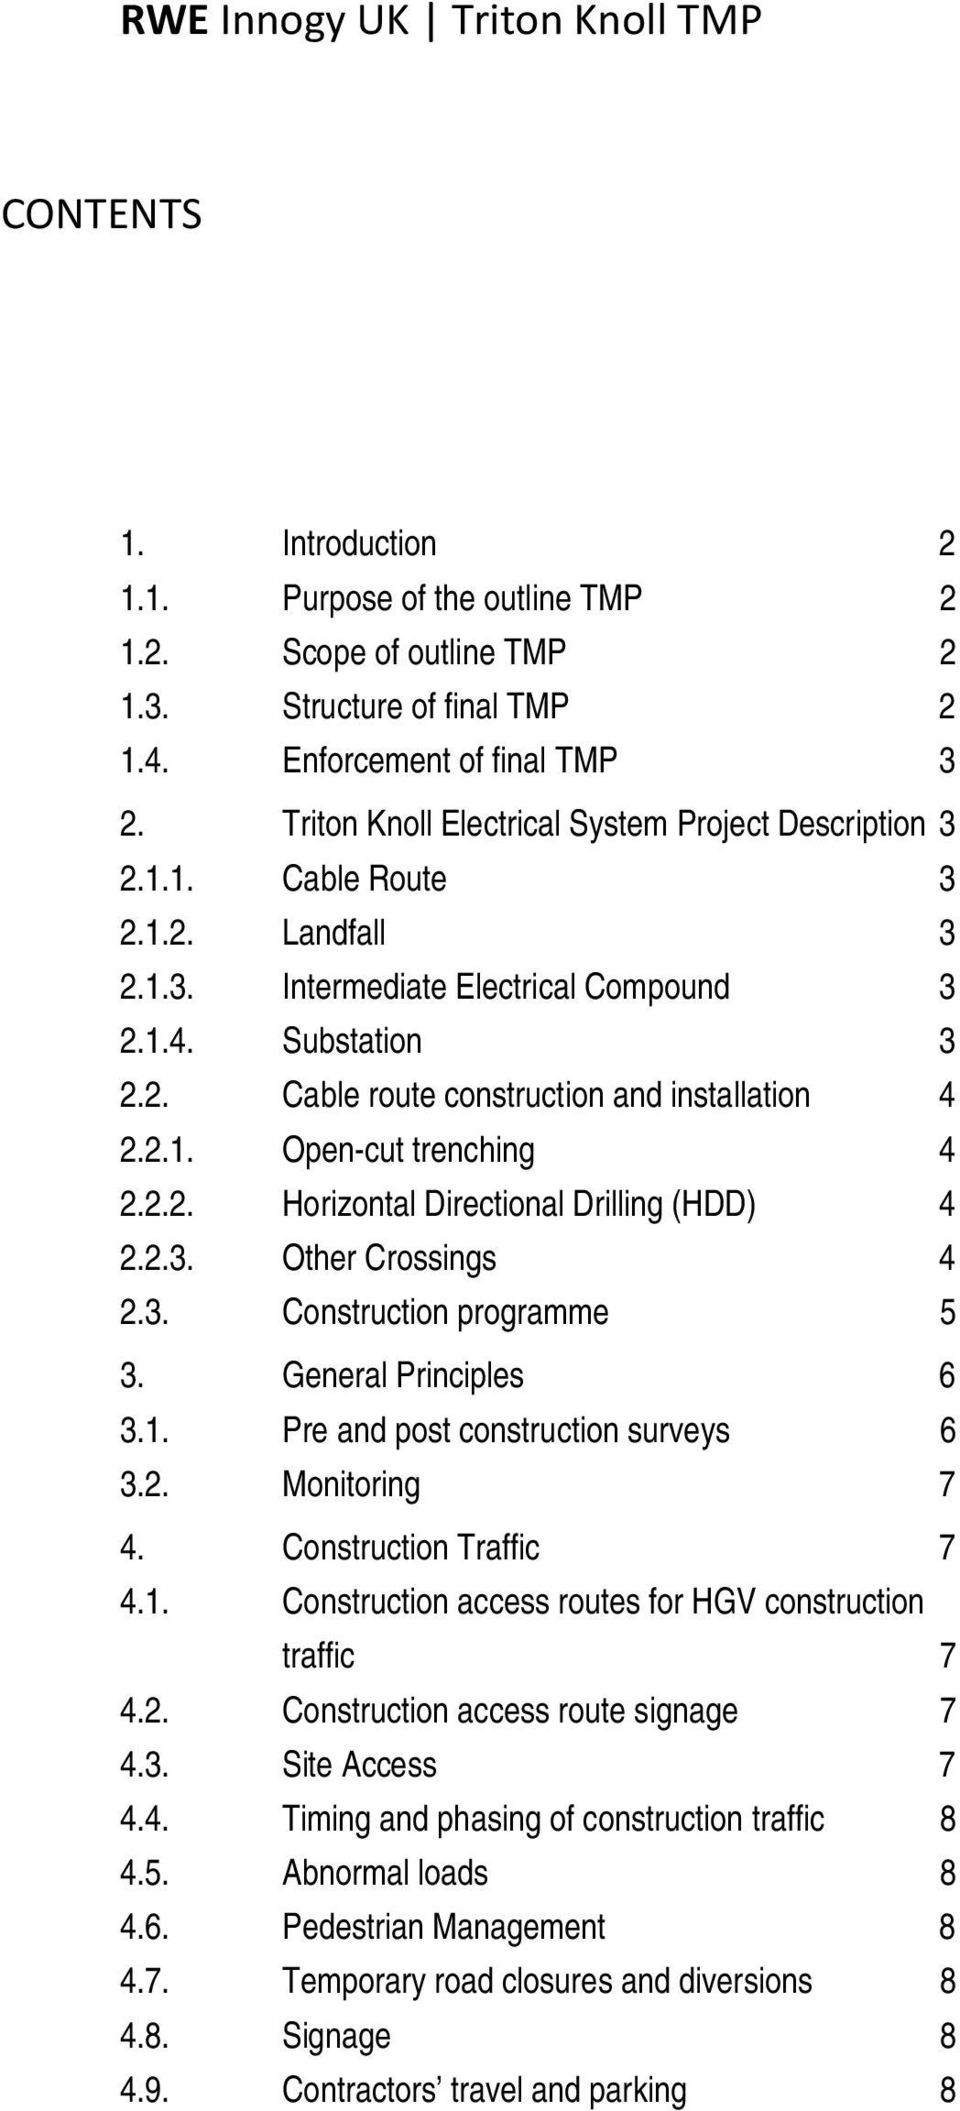 2.1. Open-cut trenching 4 2.2.2. Horizontal Directional Drilling (HDD) 4 2.2.3. Other Crossings 4 2.3. Construction programme 5 3. General Principles 6 3.1. Pre and post construction surveys 6 3.2. Monitoring 7 4.